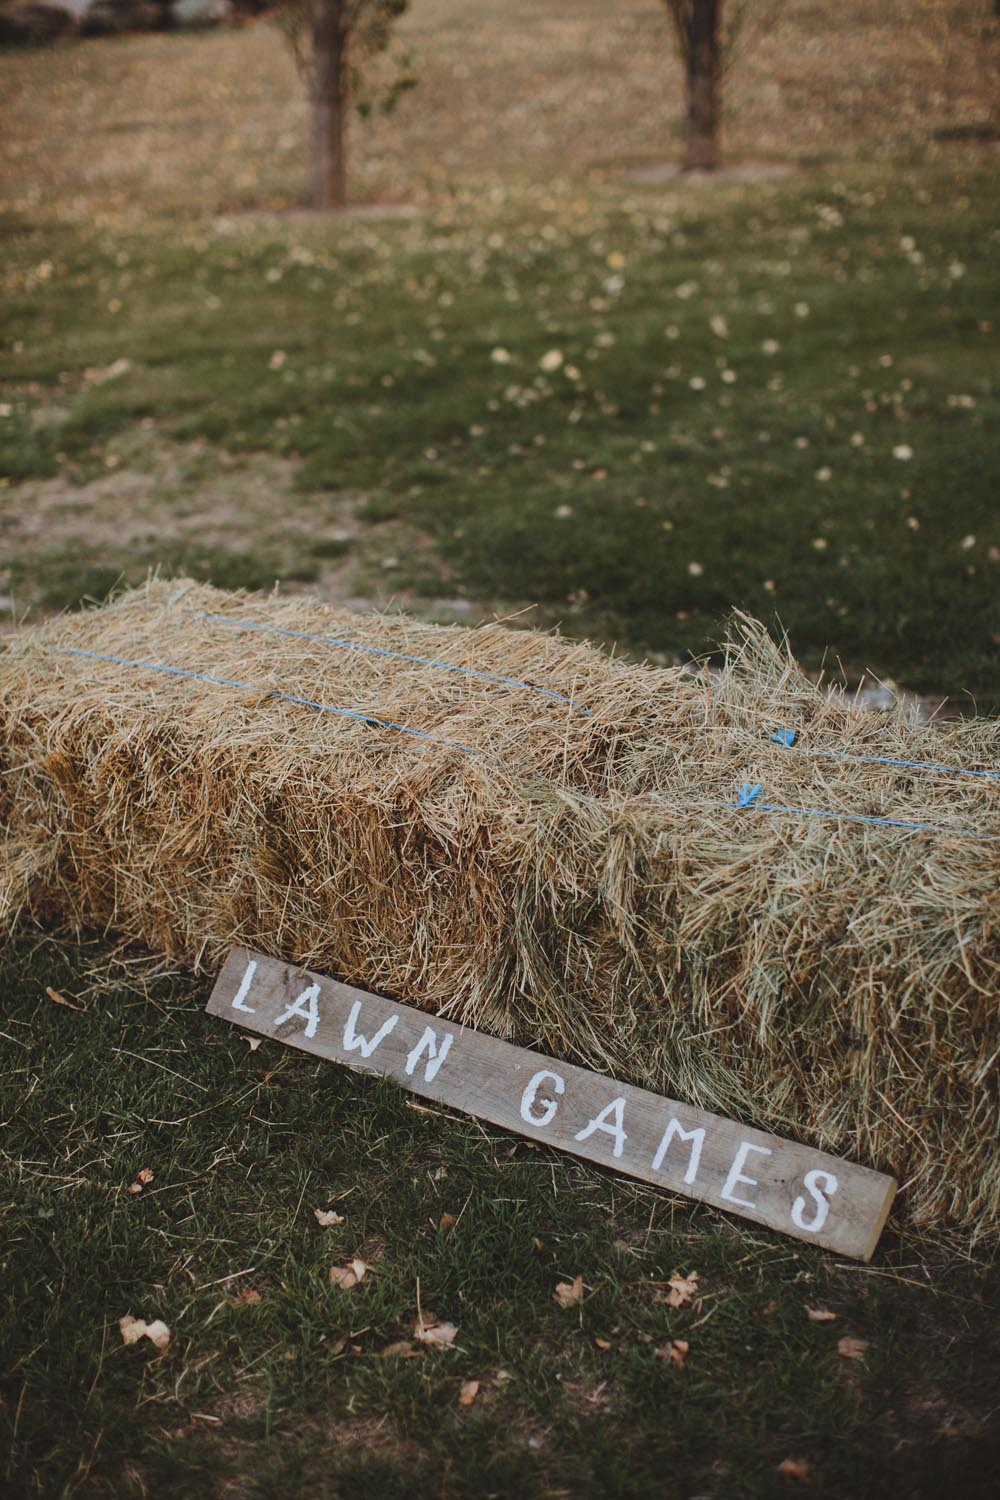 justin_aaron_queenstown_thelby_domain_new_zealand_wedding_sally_lachlan-145.jpg